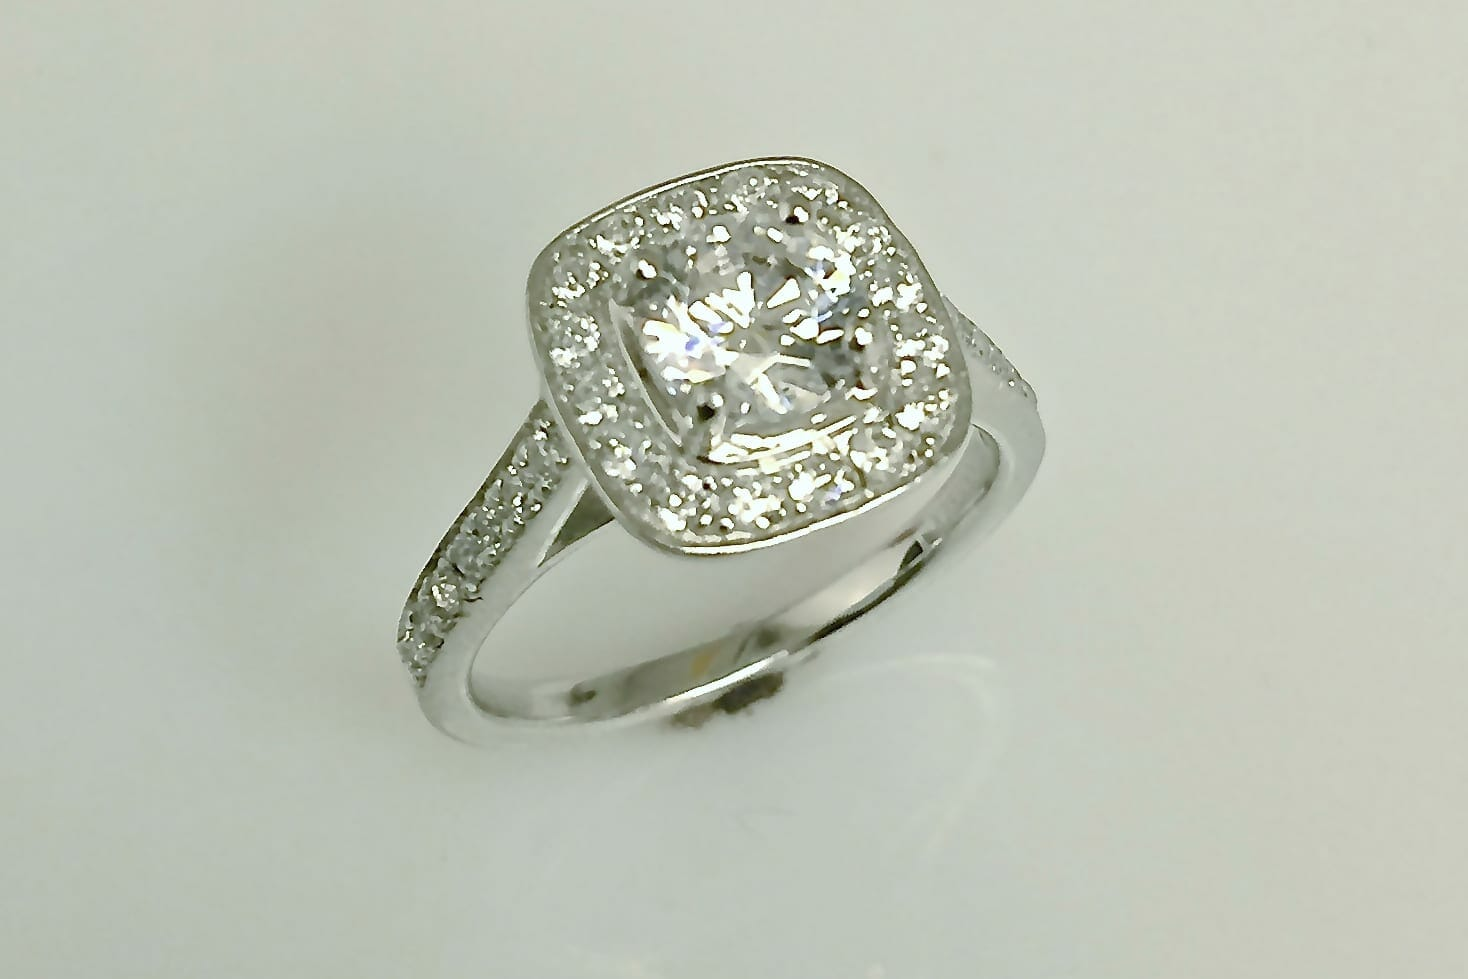 Doris Cushion Halo Engagement Ring